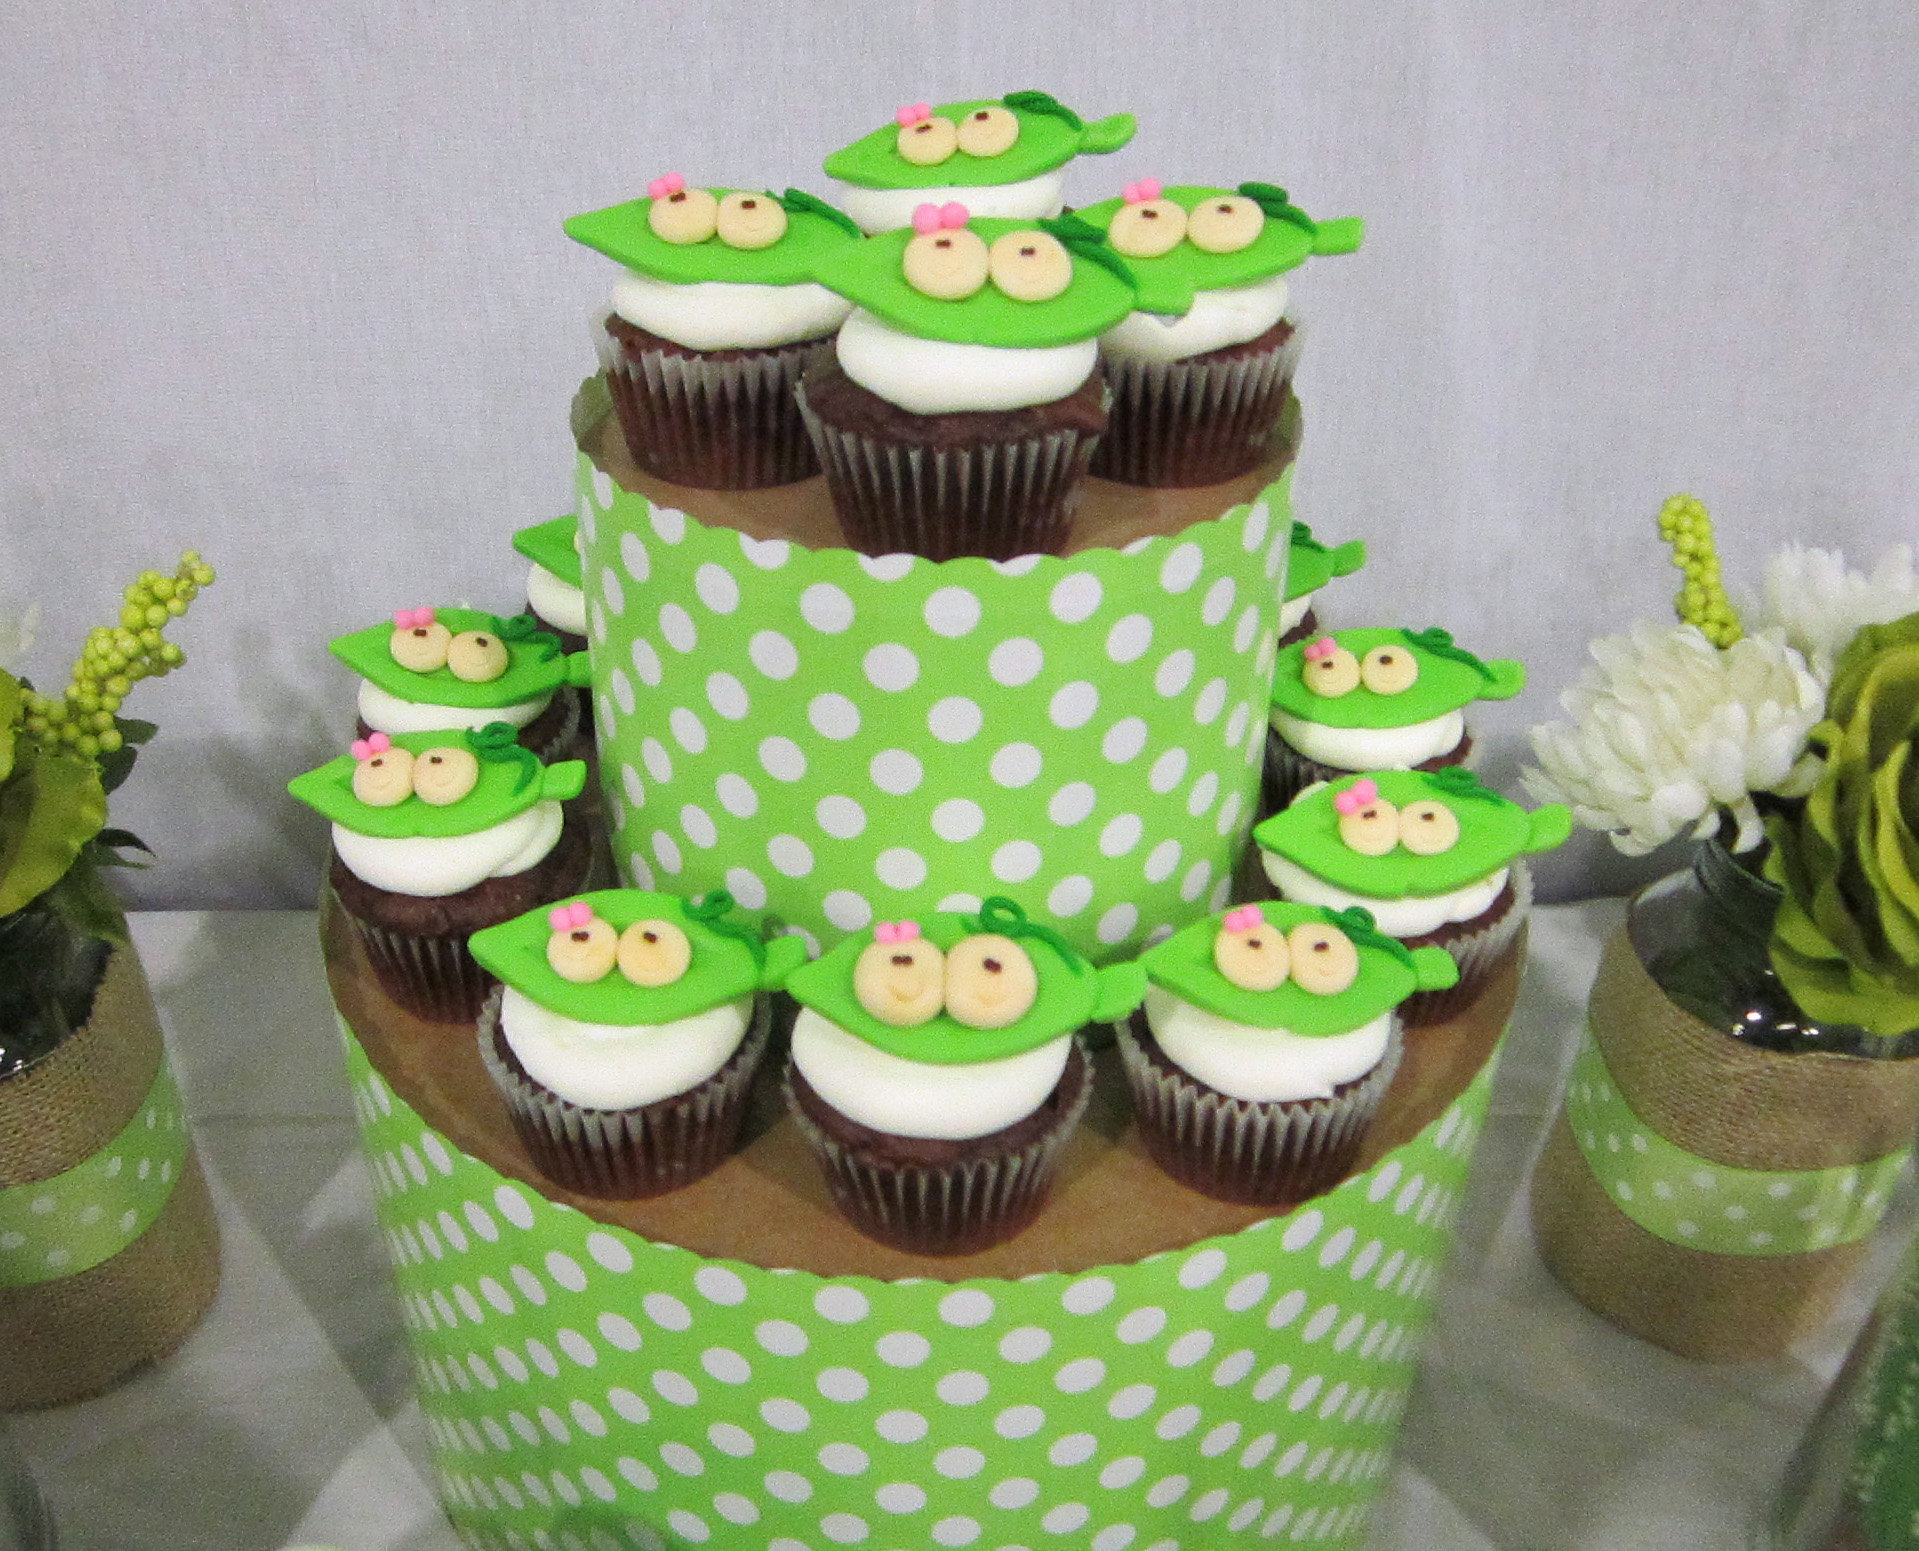 25 DIY Cupcake Stands with Instructions | Guide Patterns